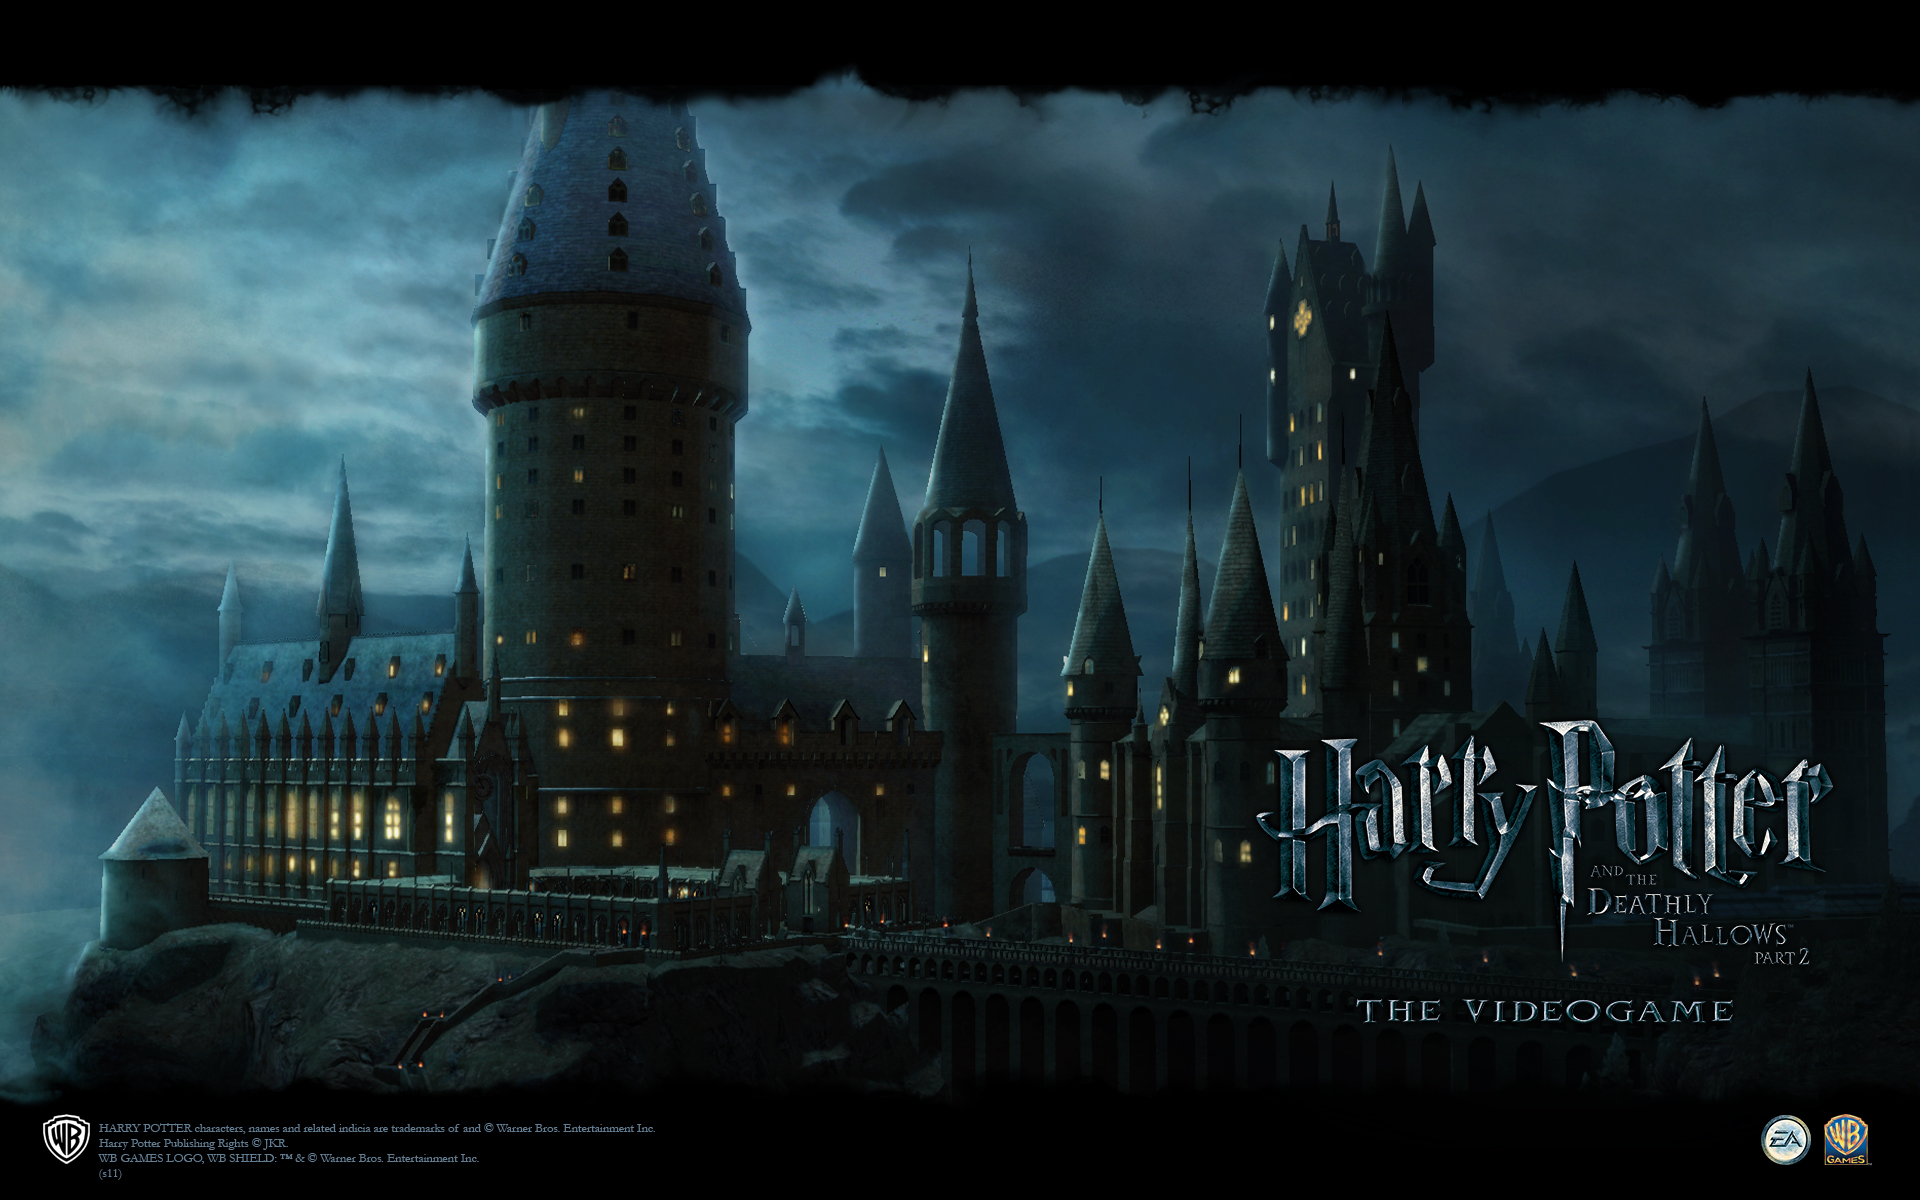 Most Inspiring Wallpaper Harry Potter Blue - harry-potter-and-the-deathly-hallows-part-2-game-wallpaper-hogwarts-castle  Collection_47388.jpg